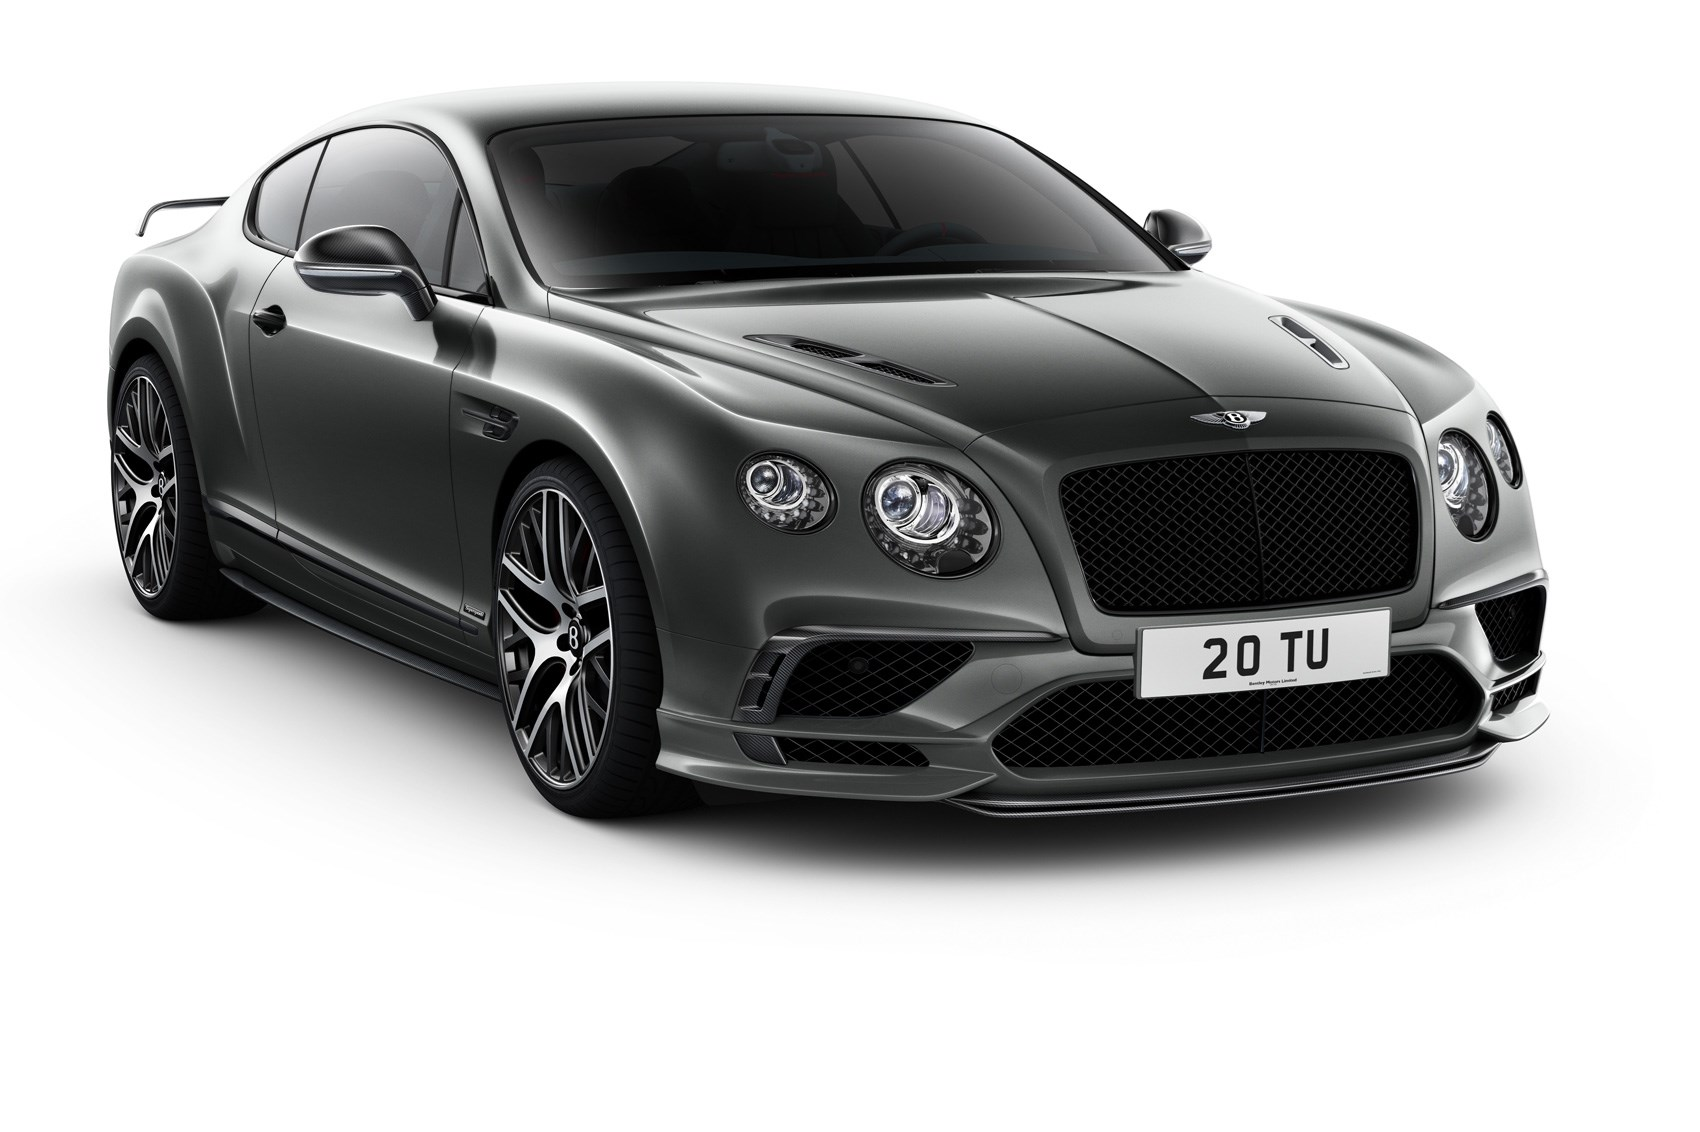 Meet the 2017 Bentley Continental Supersports: the most powerful Bentley to date